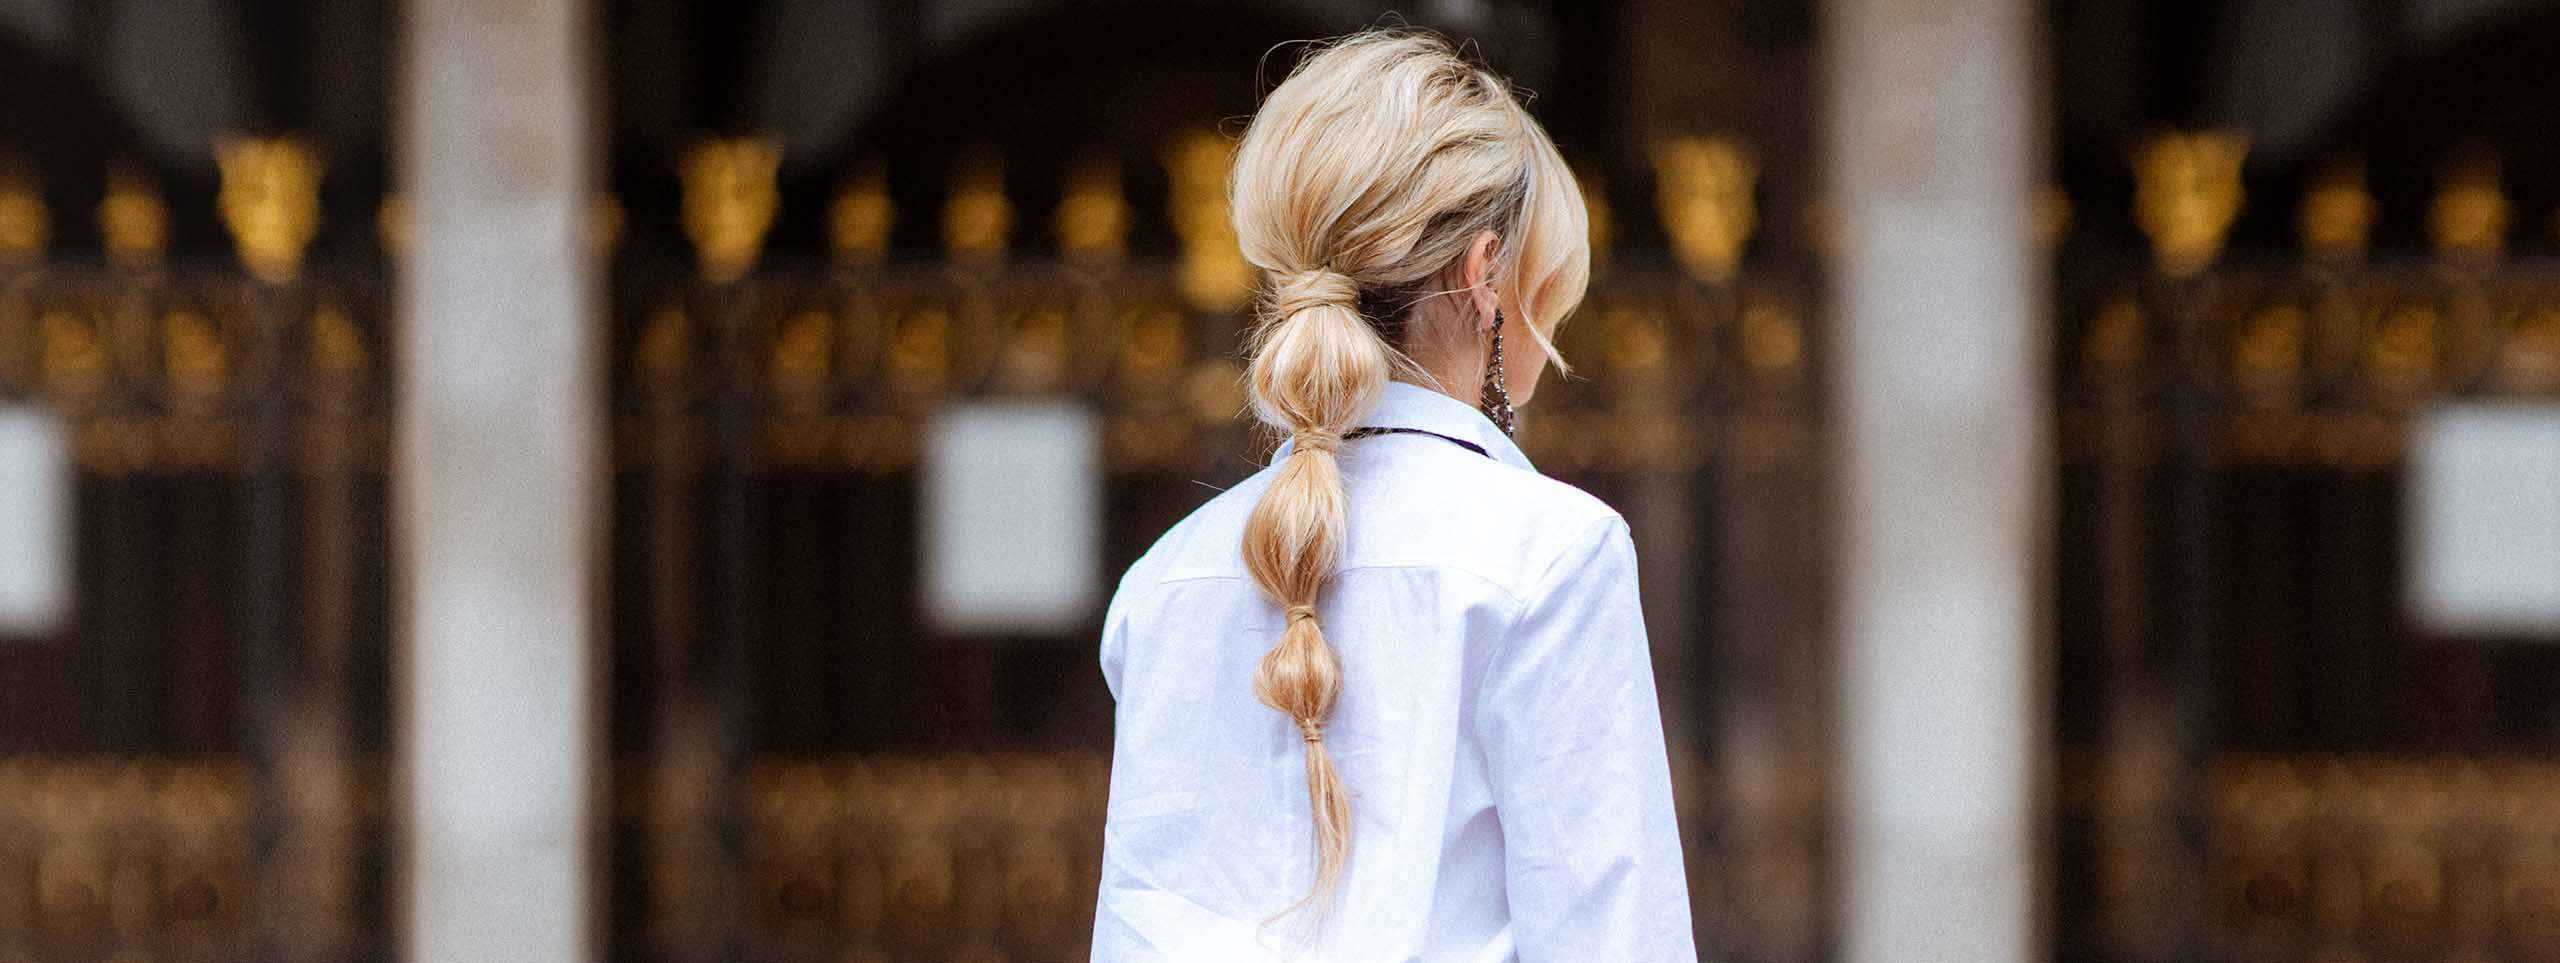 Blond woman with braided ponytail